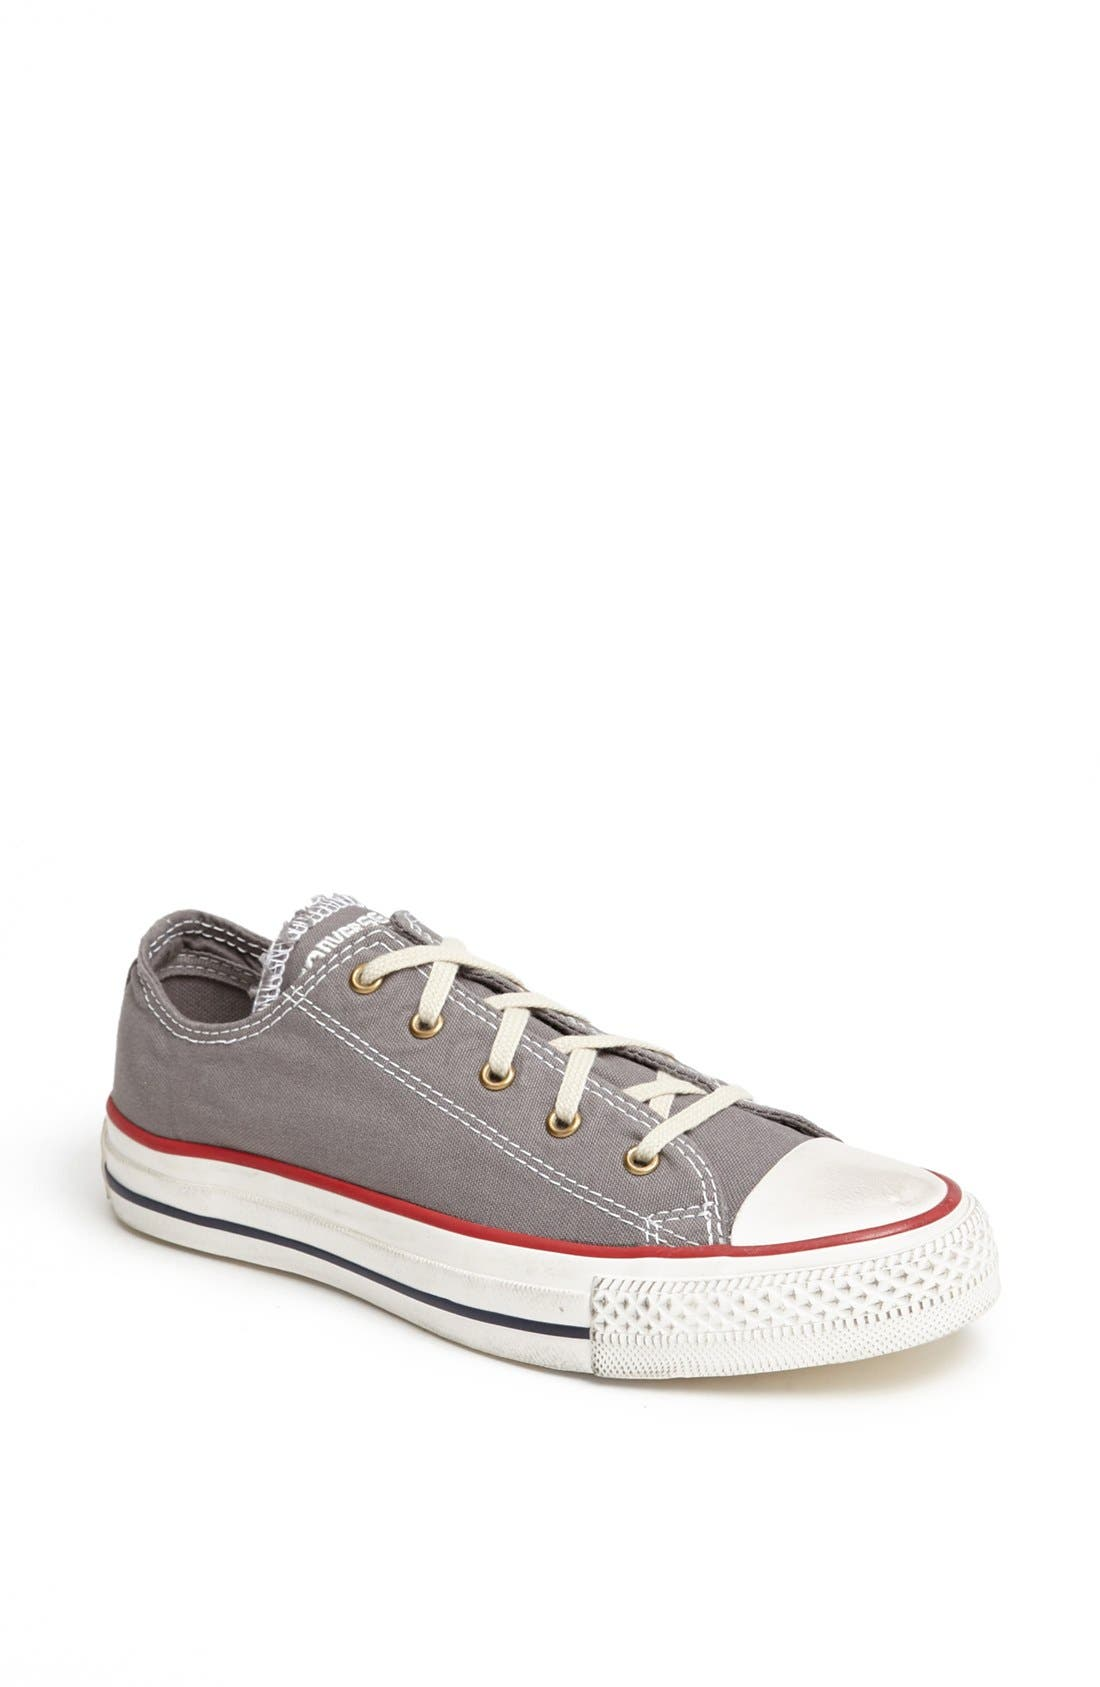 Main Image - Converse Chuck Taylor® All Star® 'Washed' Sneaker (Women)